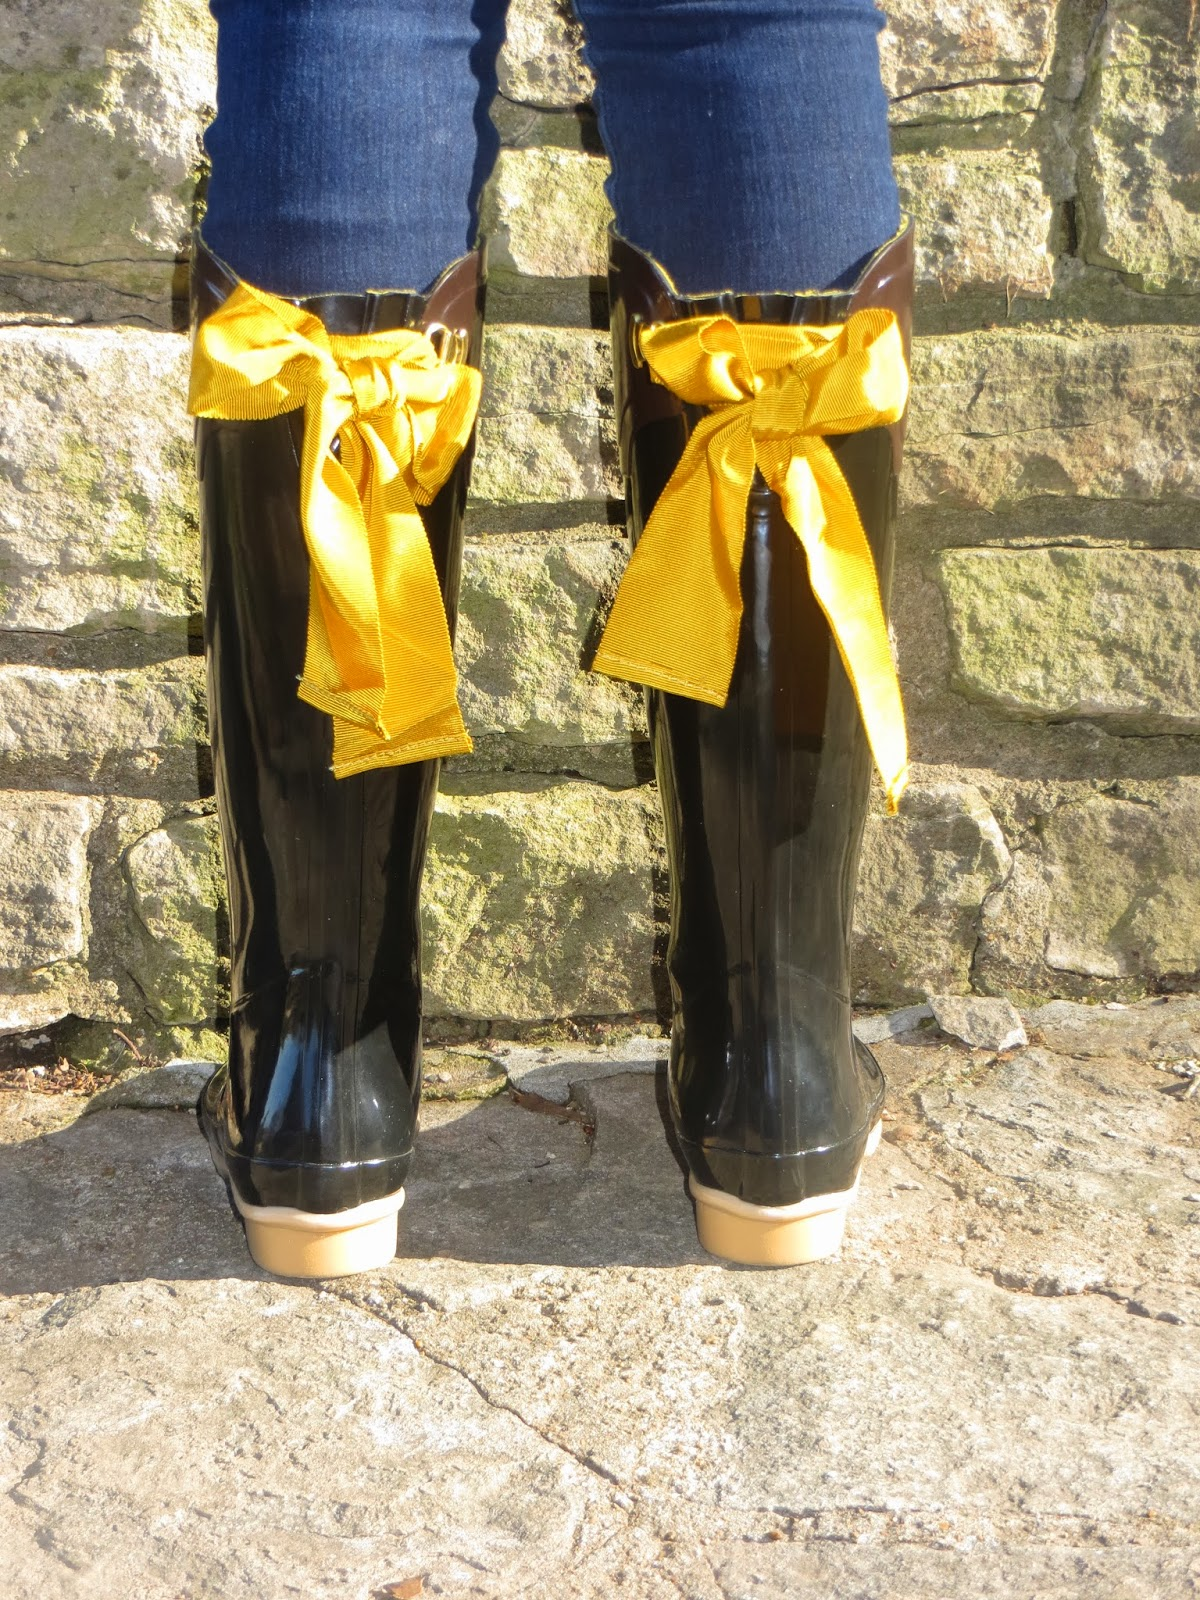 To acquire Boots rain with bows on back photo pictures trends